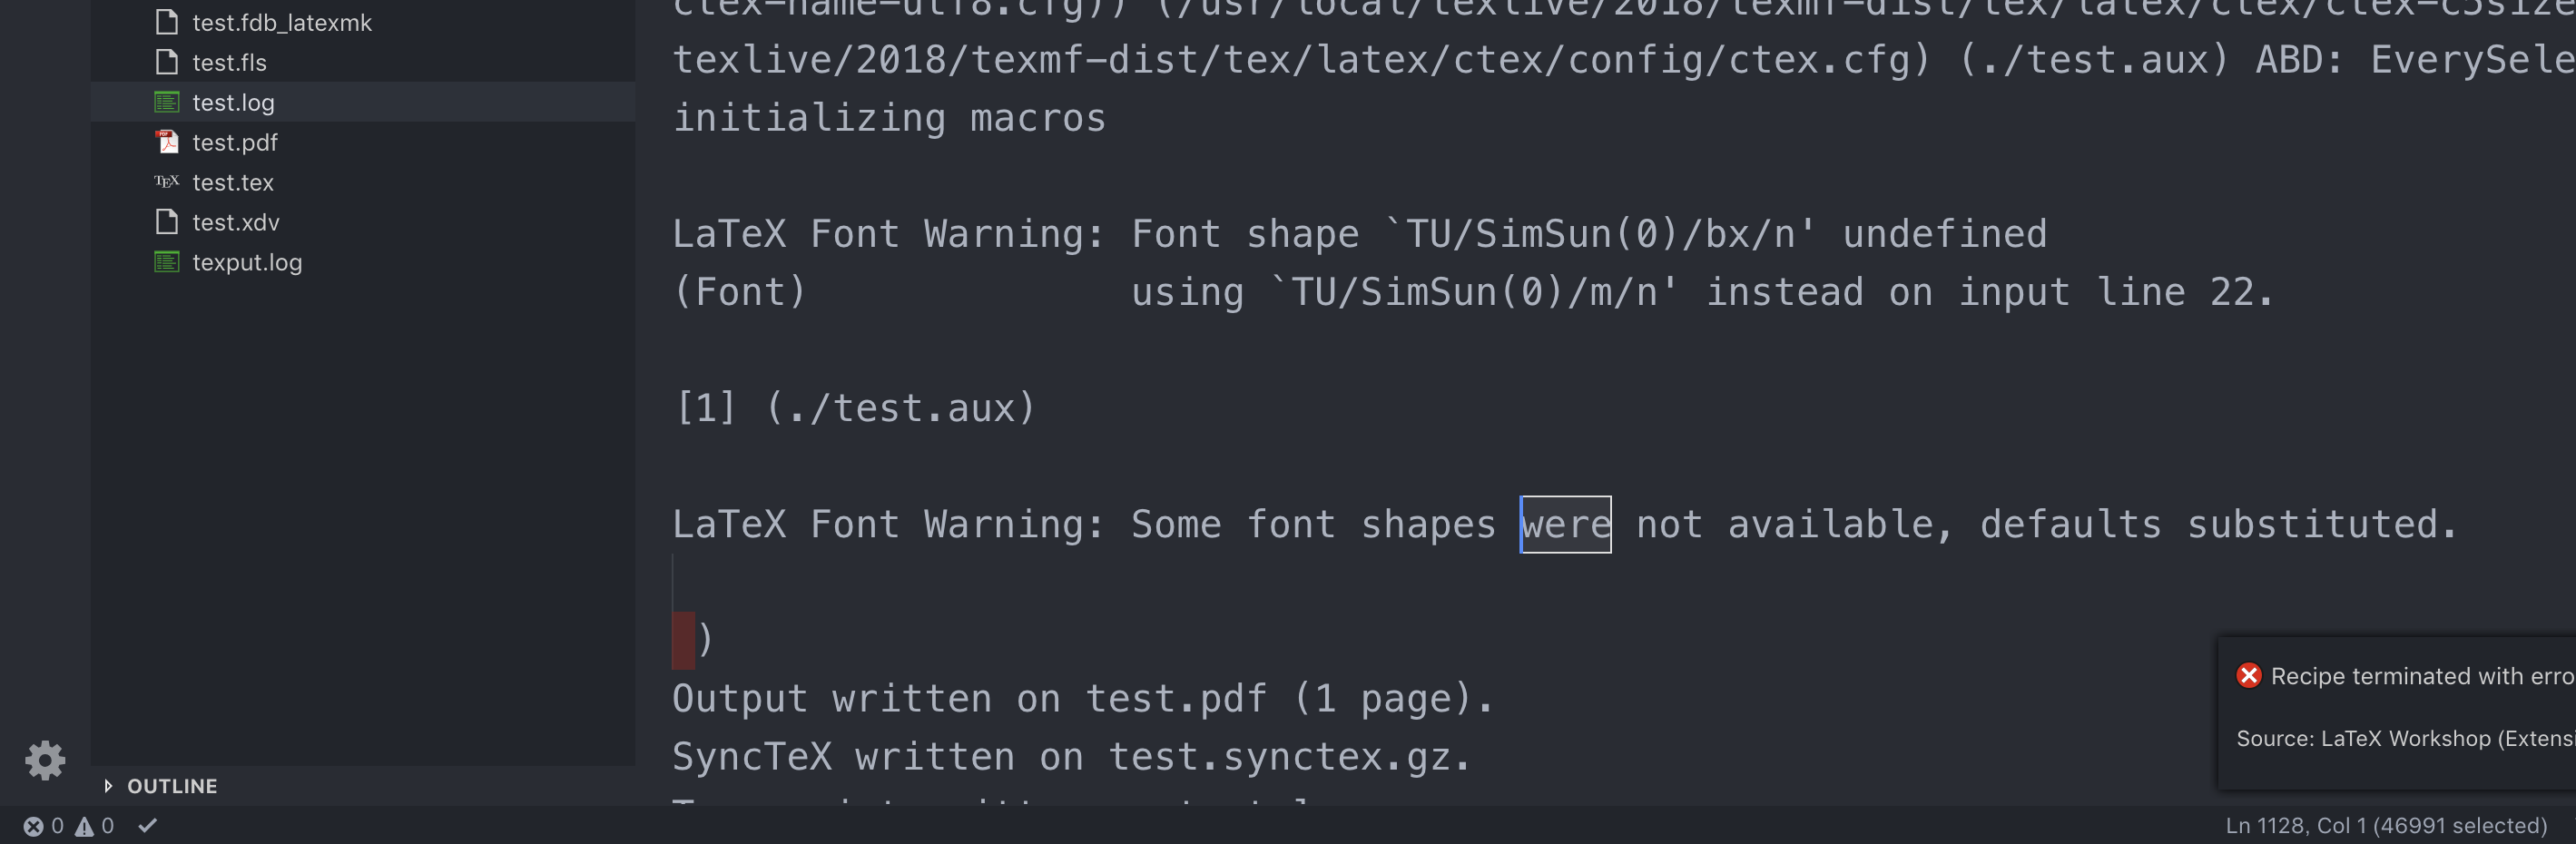 LaTeX Font Warning was not displayed in the problem pane